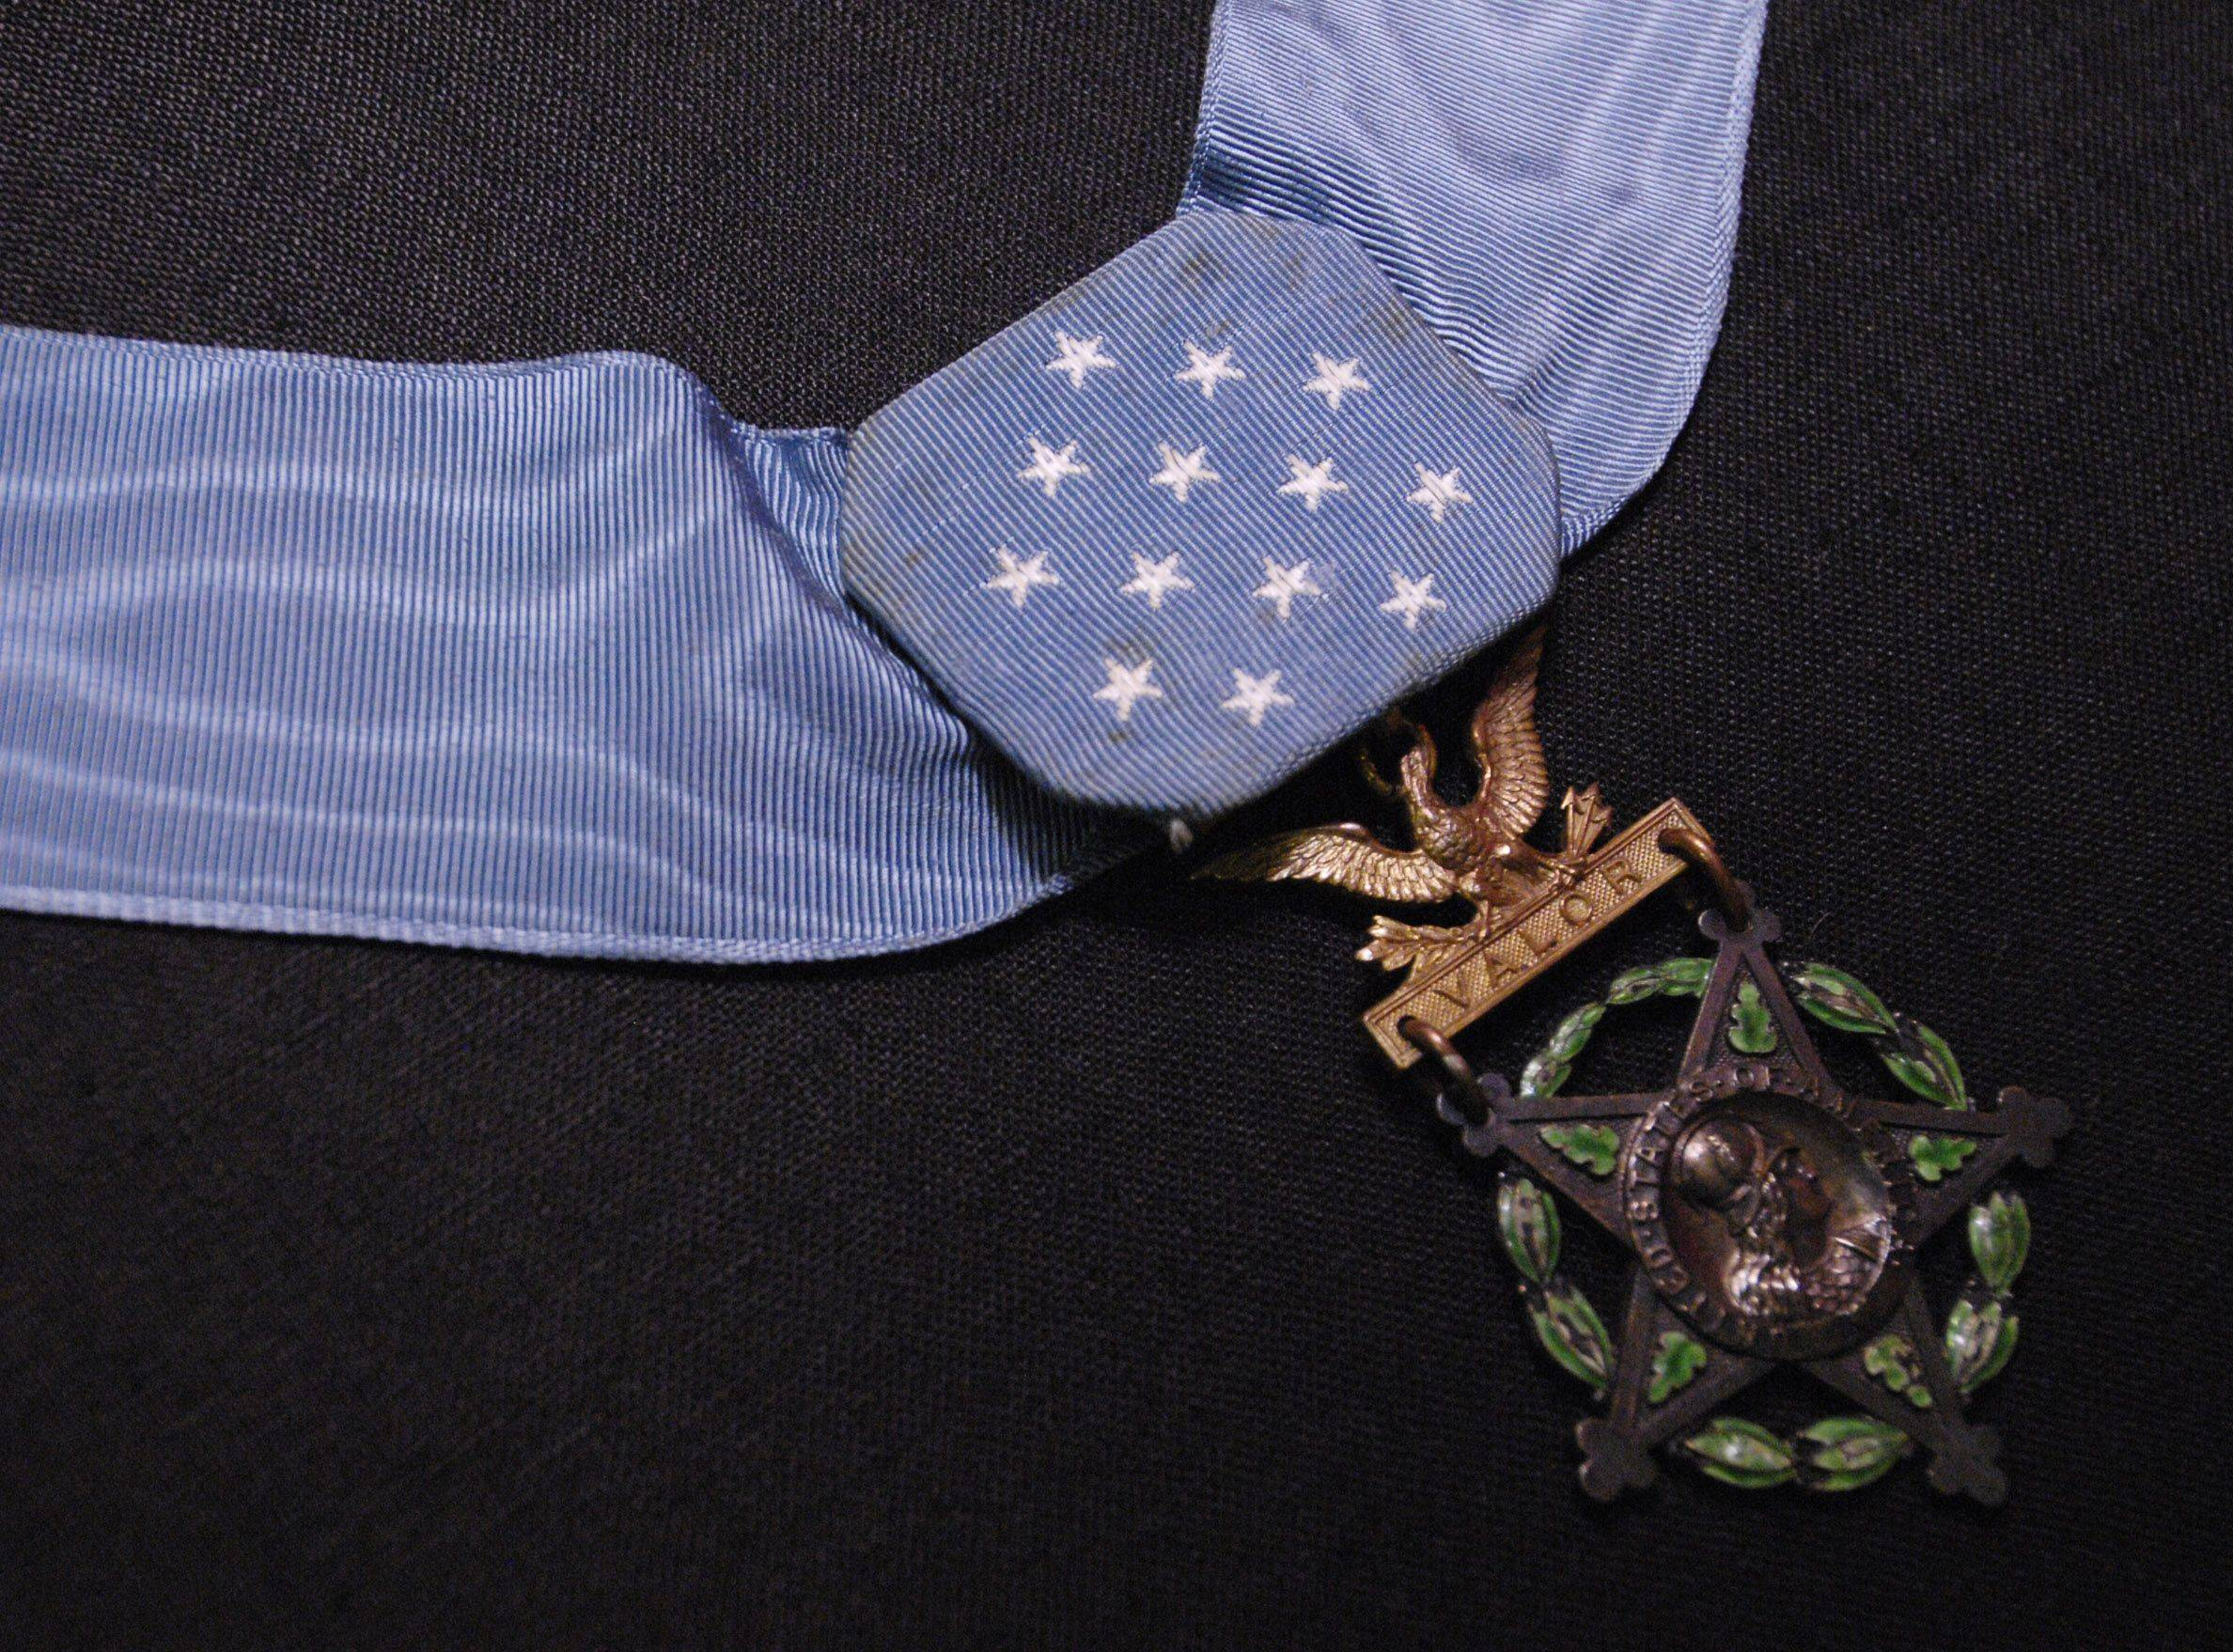 The Medal of Honor of World War I and 1st Division veteran Sam Parker is housed in a vault along with other items such as artwork and weapons in the 1st Division Museums collections area.